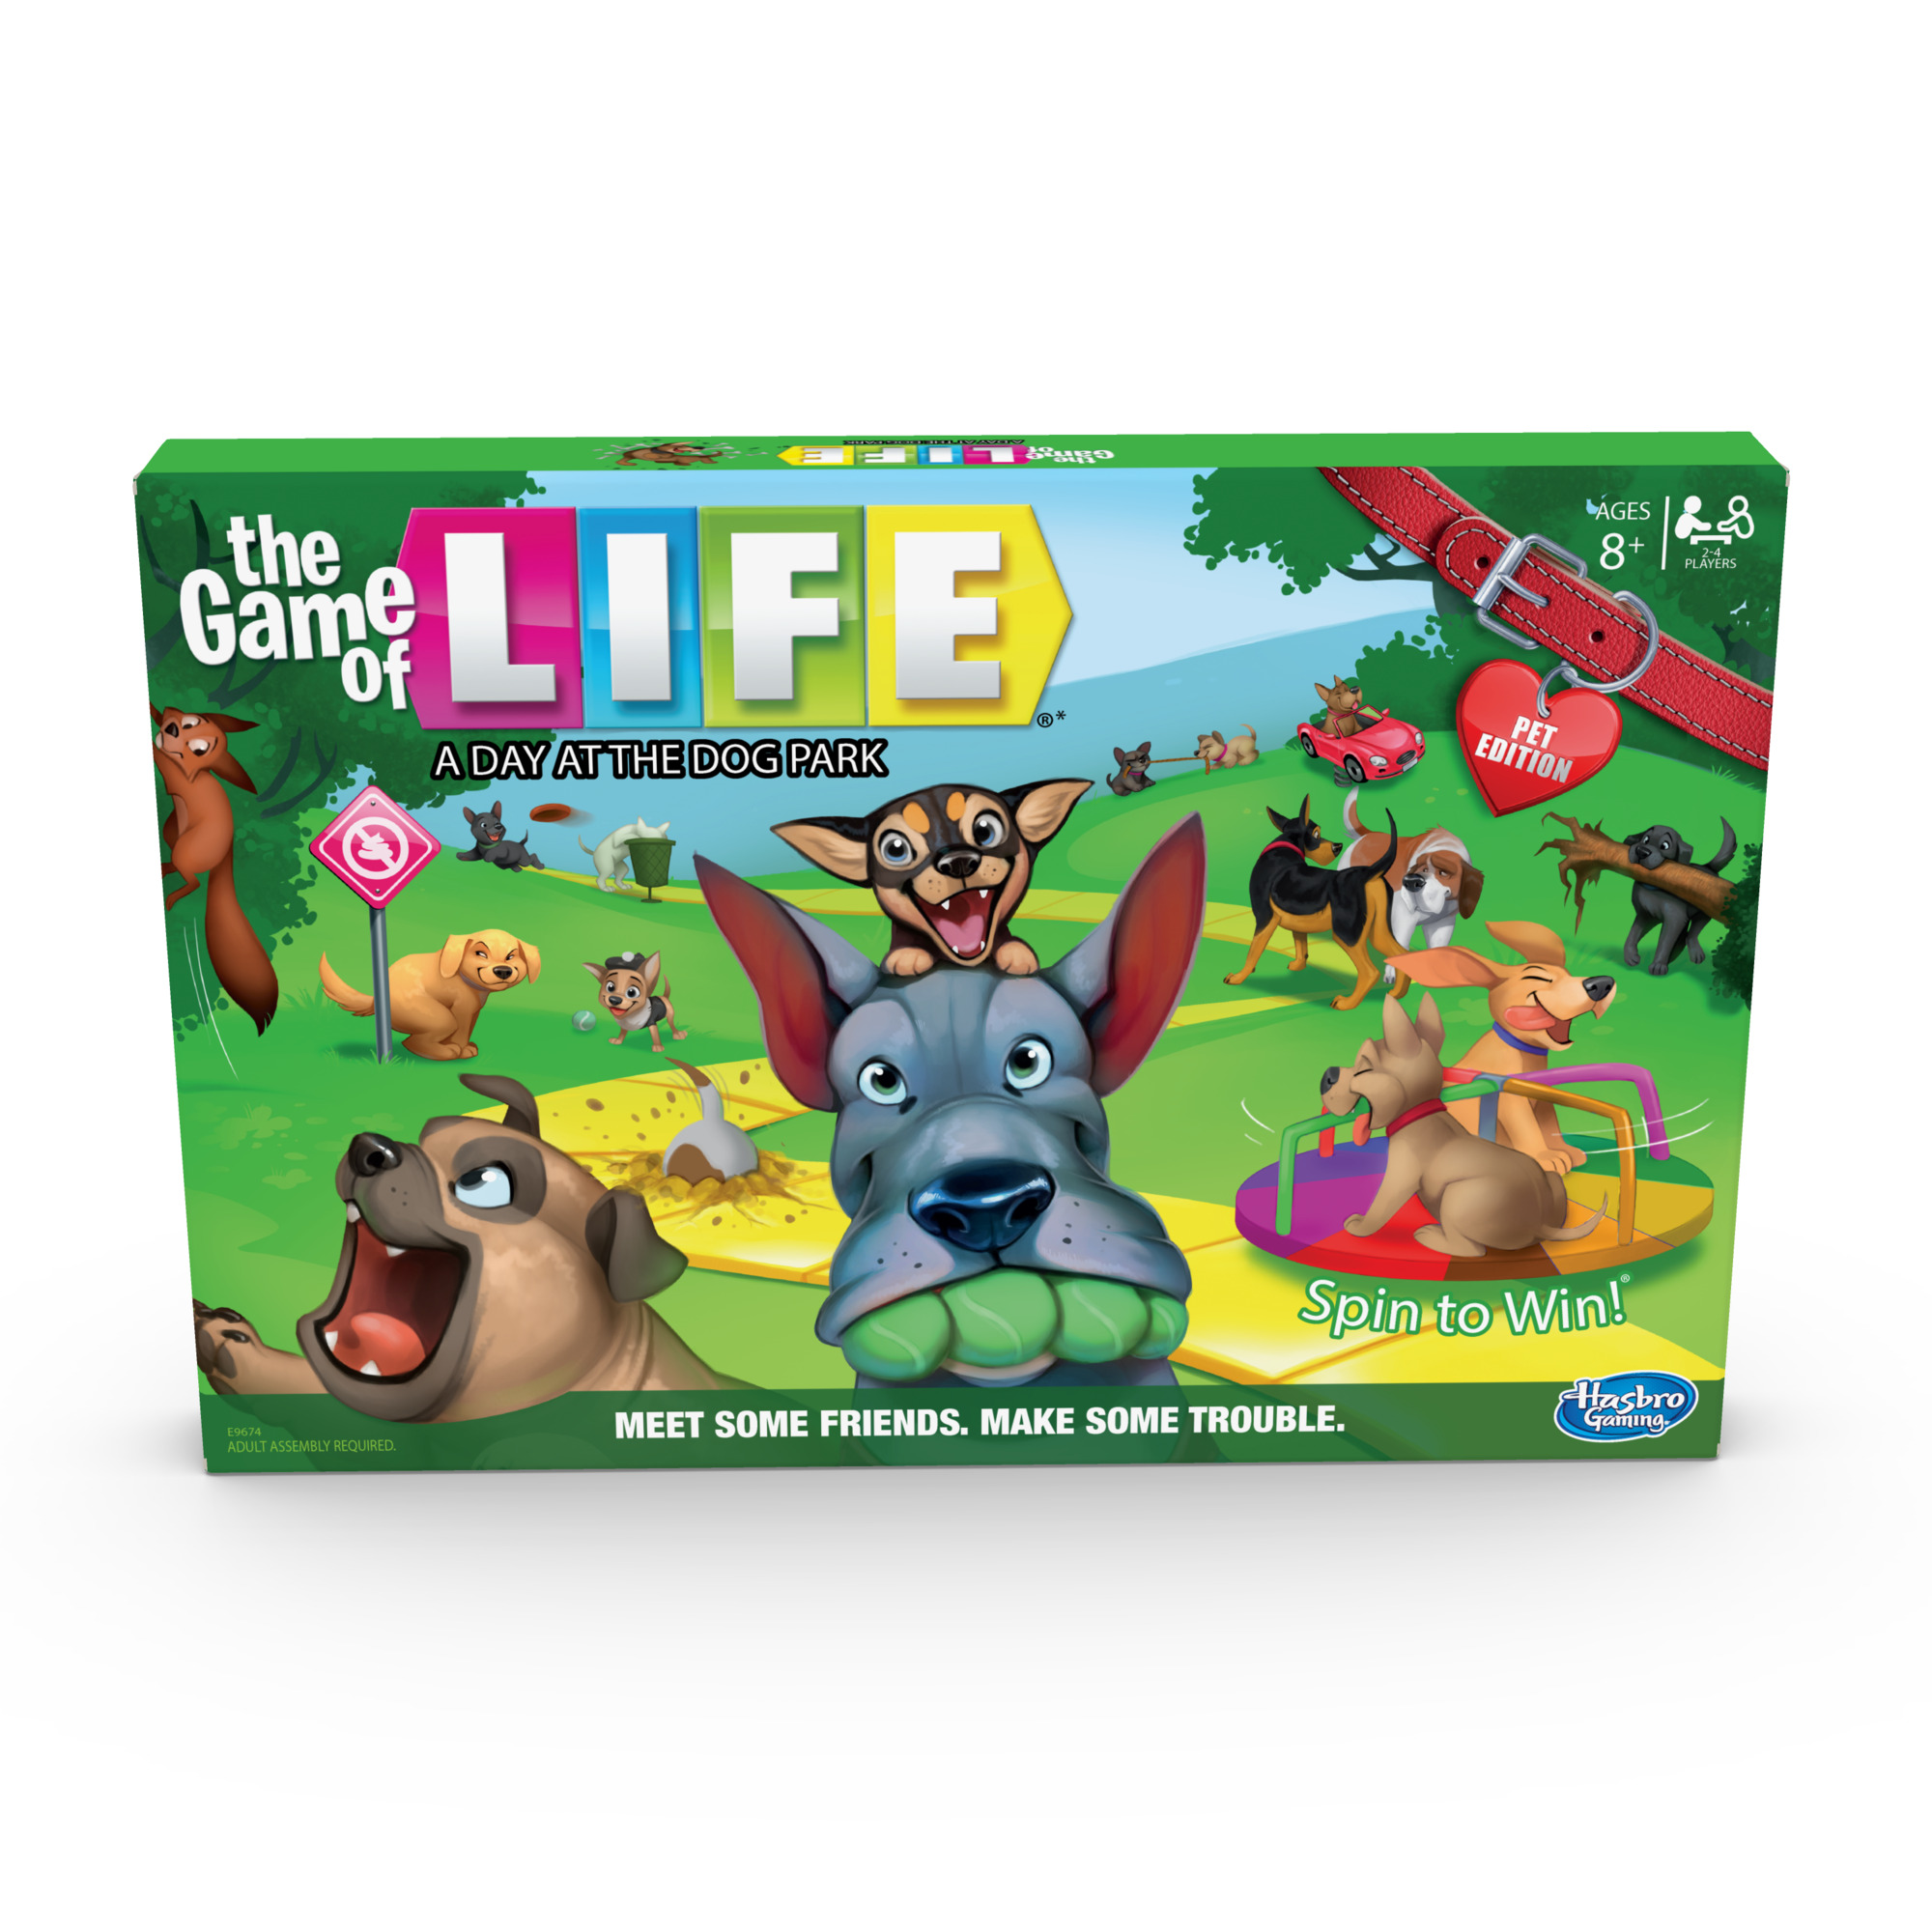 Only At Walmart: The Game of Life: A Day at the Dog Park Board Game - Walmart.com